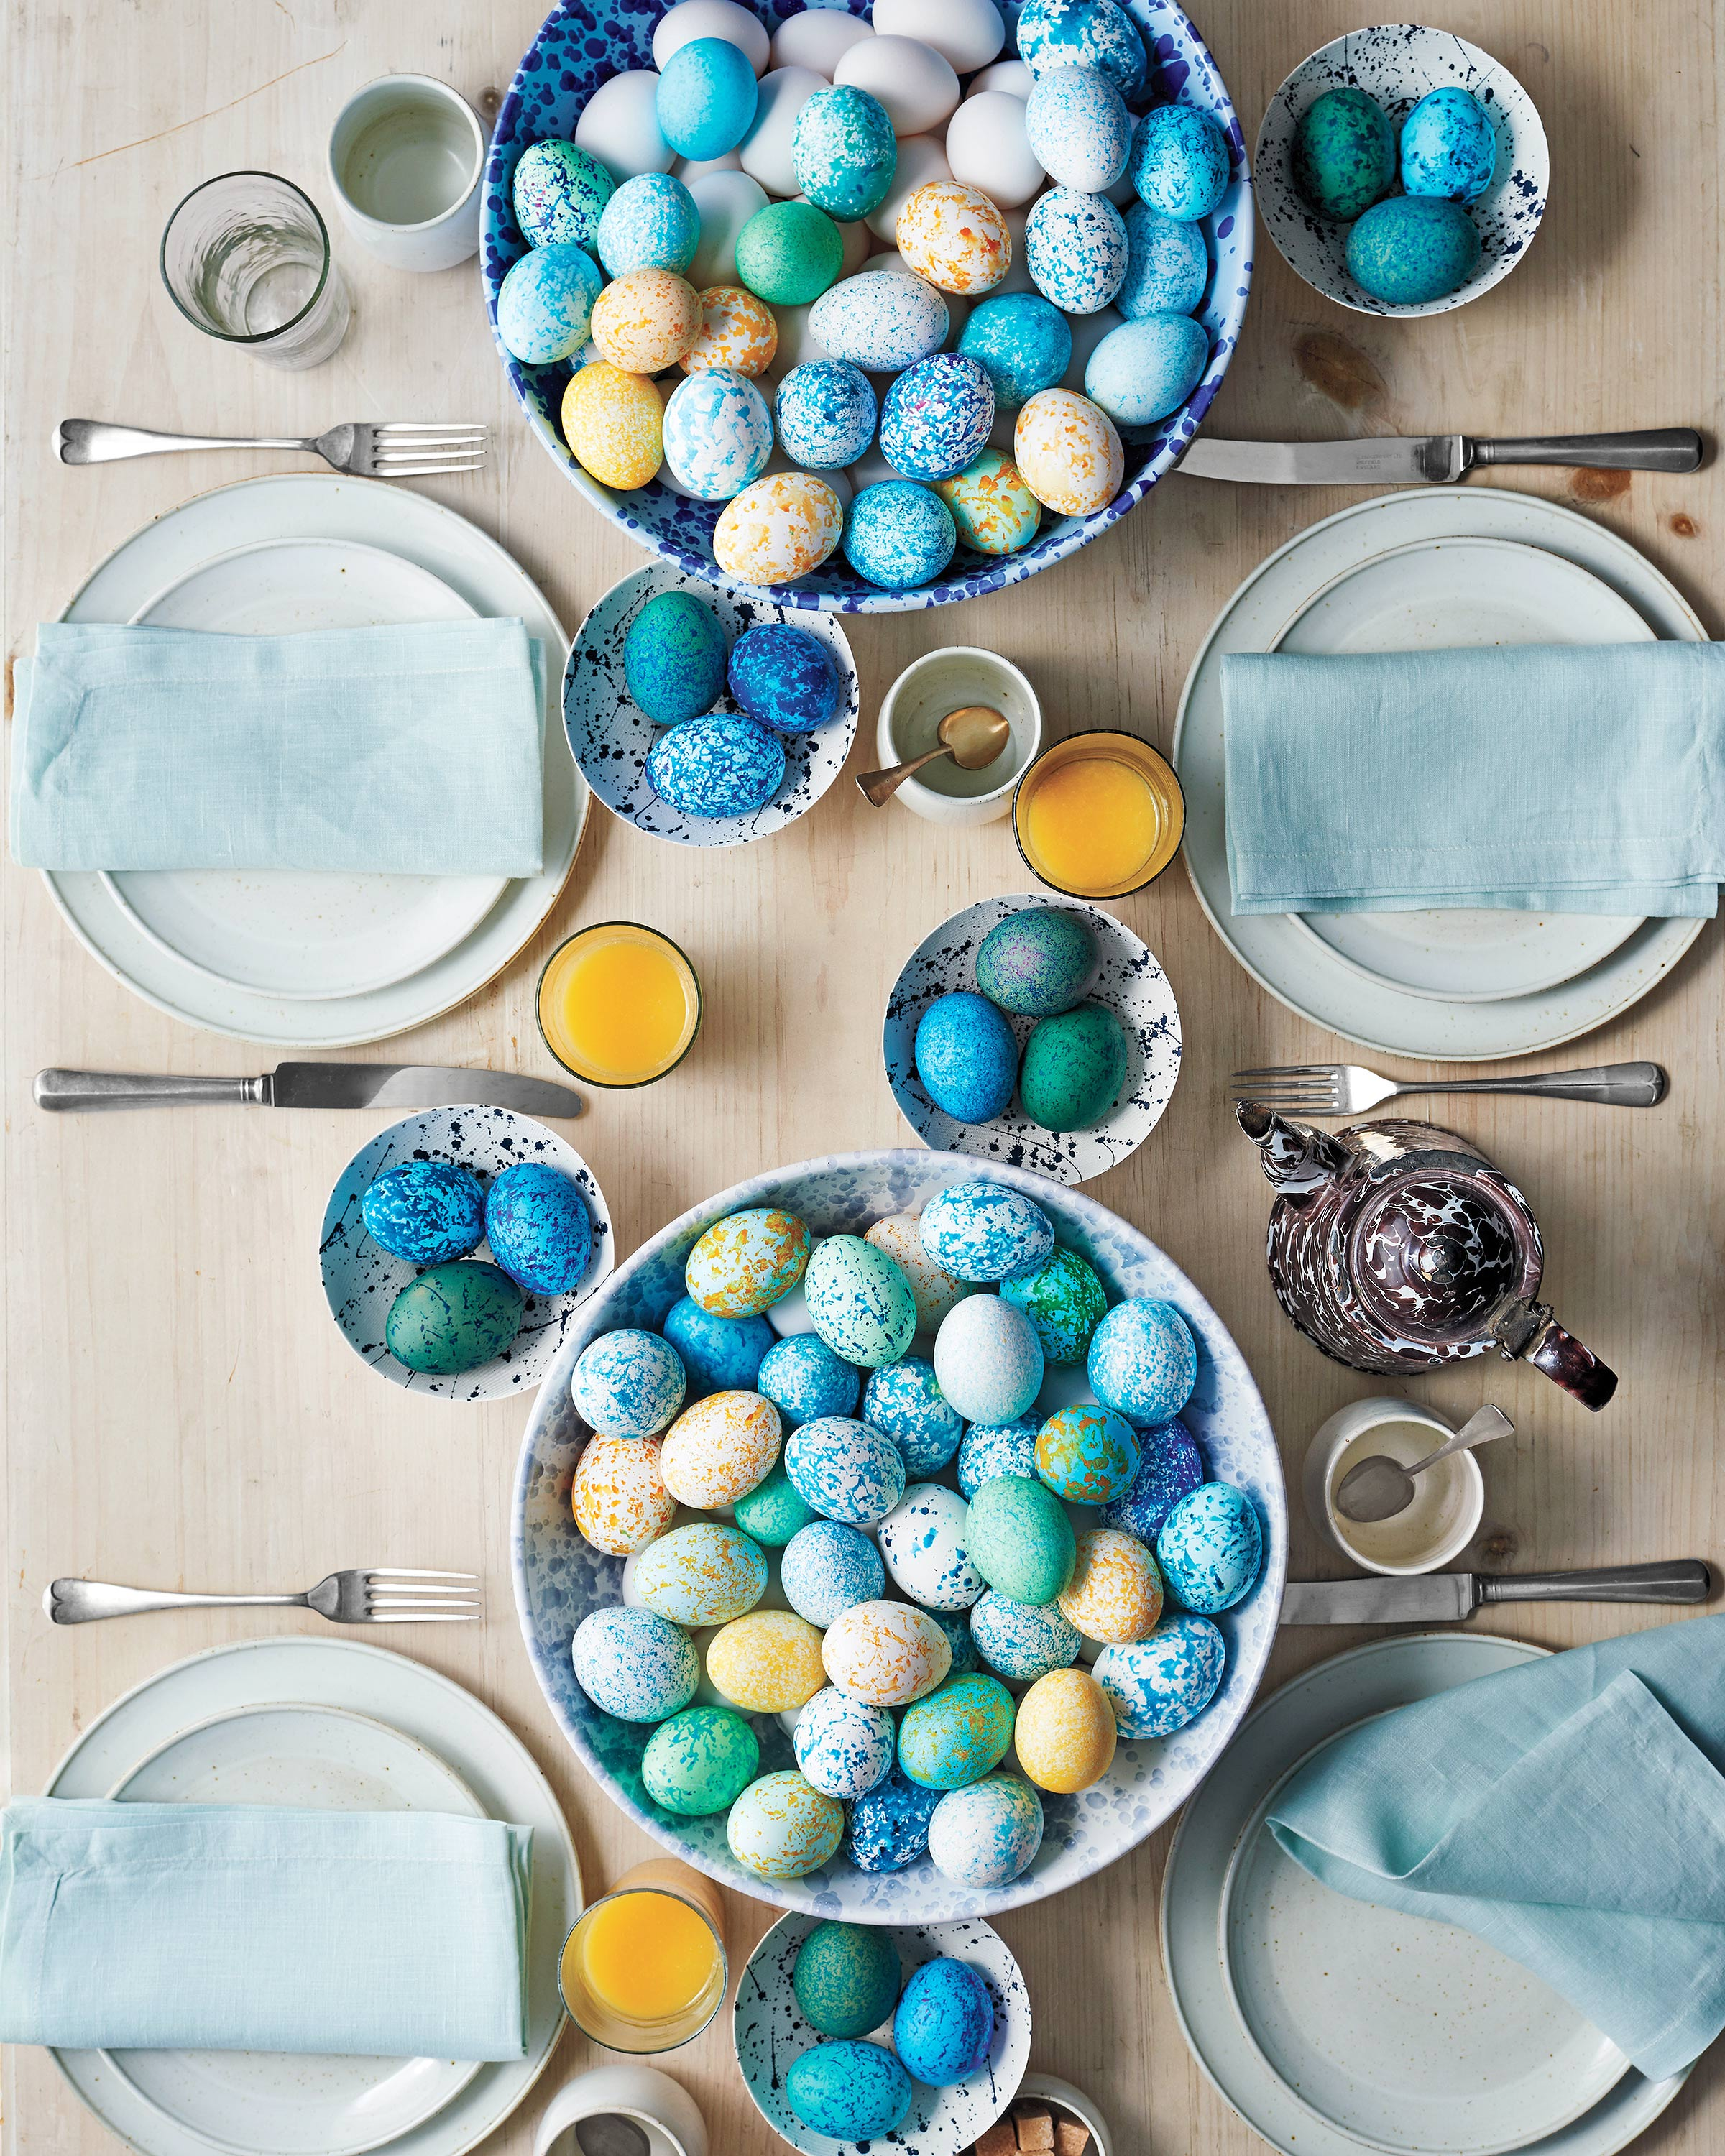 splattered-eggs-table-setting-054-darker-d112668.jpg